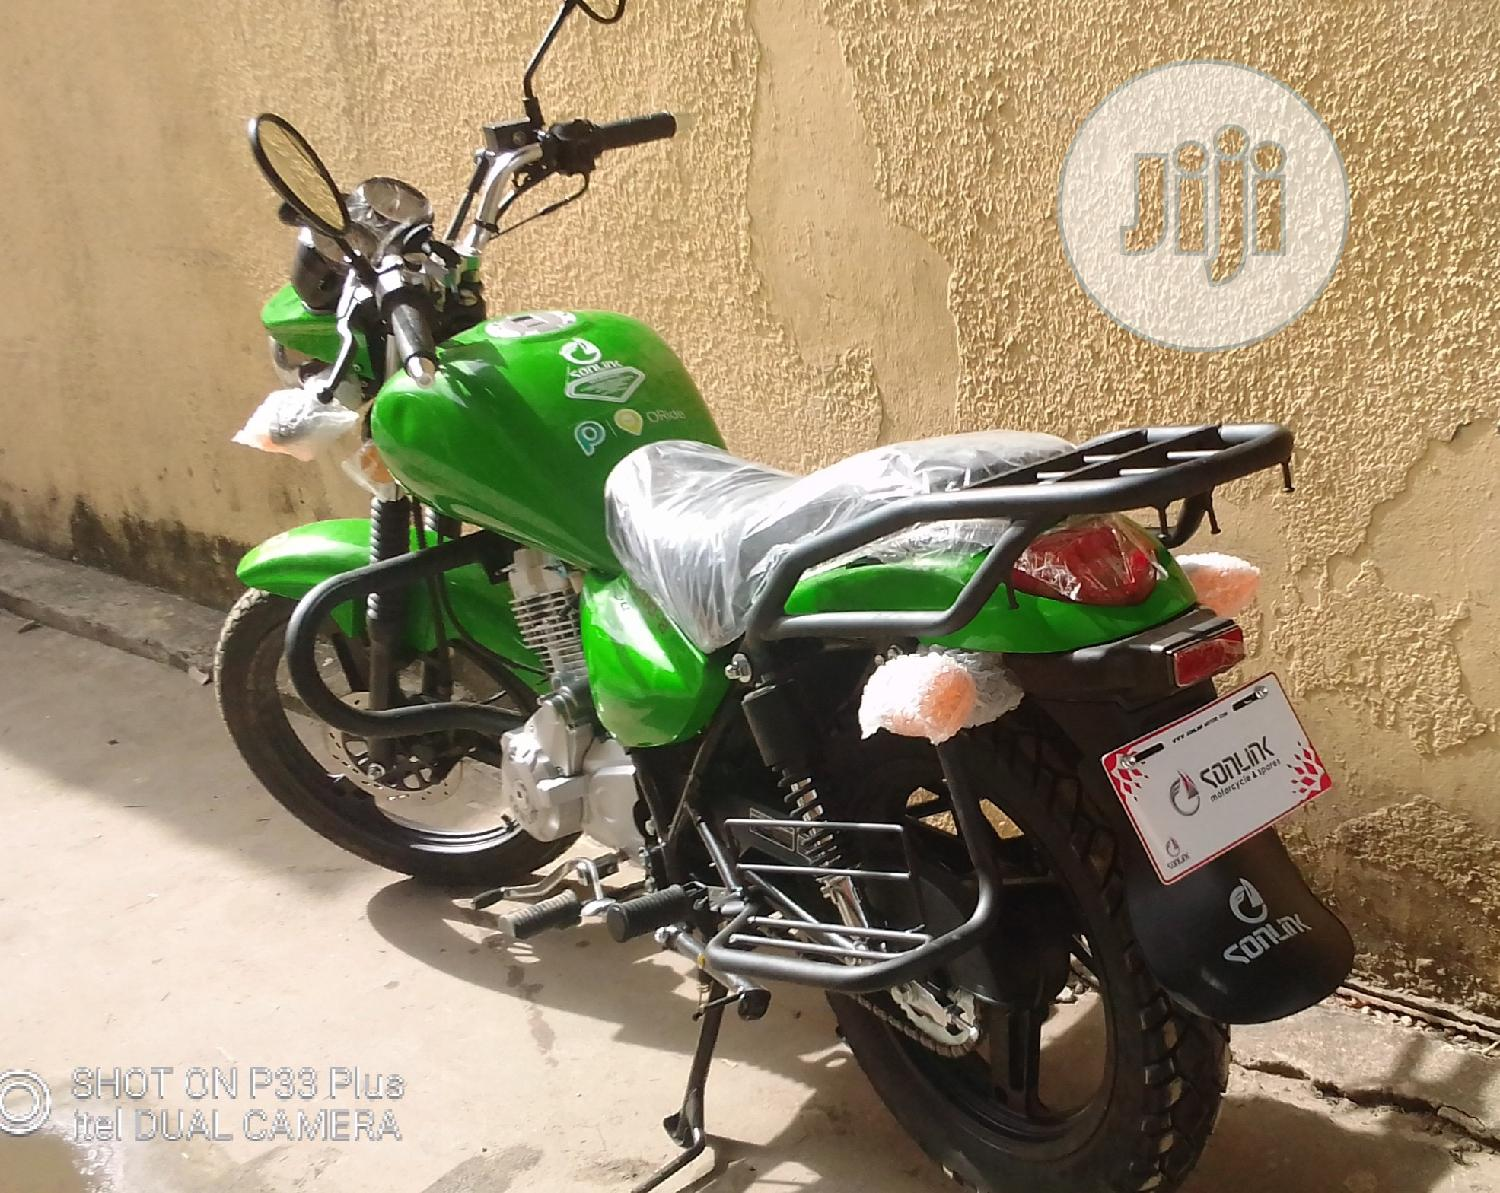 New Desperado Pale Rider 2020 Red | Motorcycles & Scooters for sale in Yaba, Lagos State, Nigeria